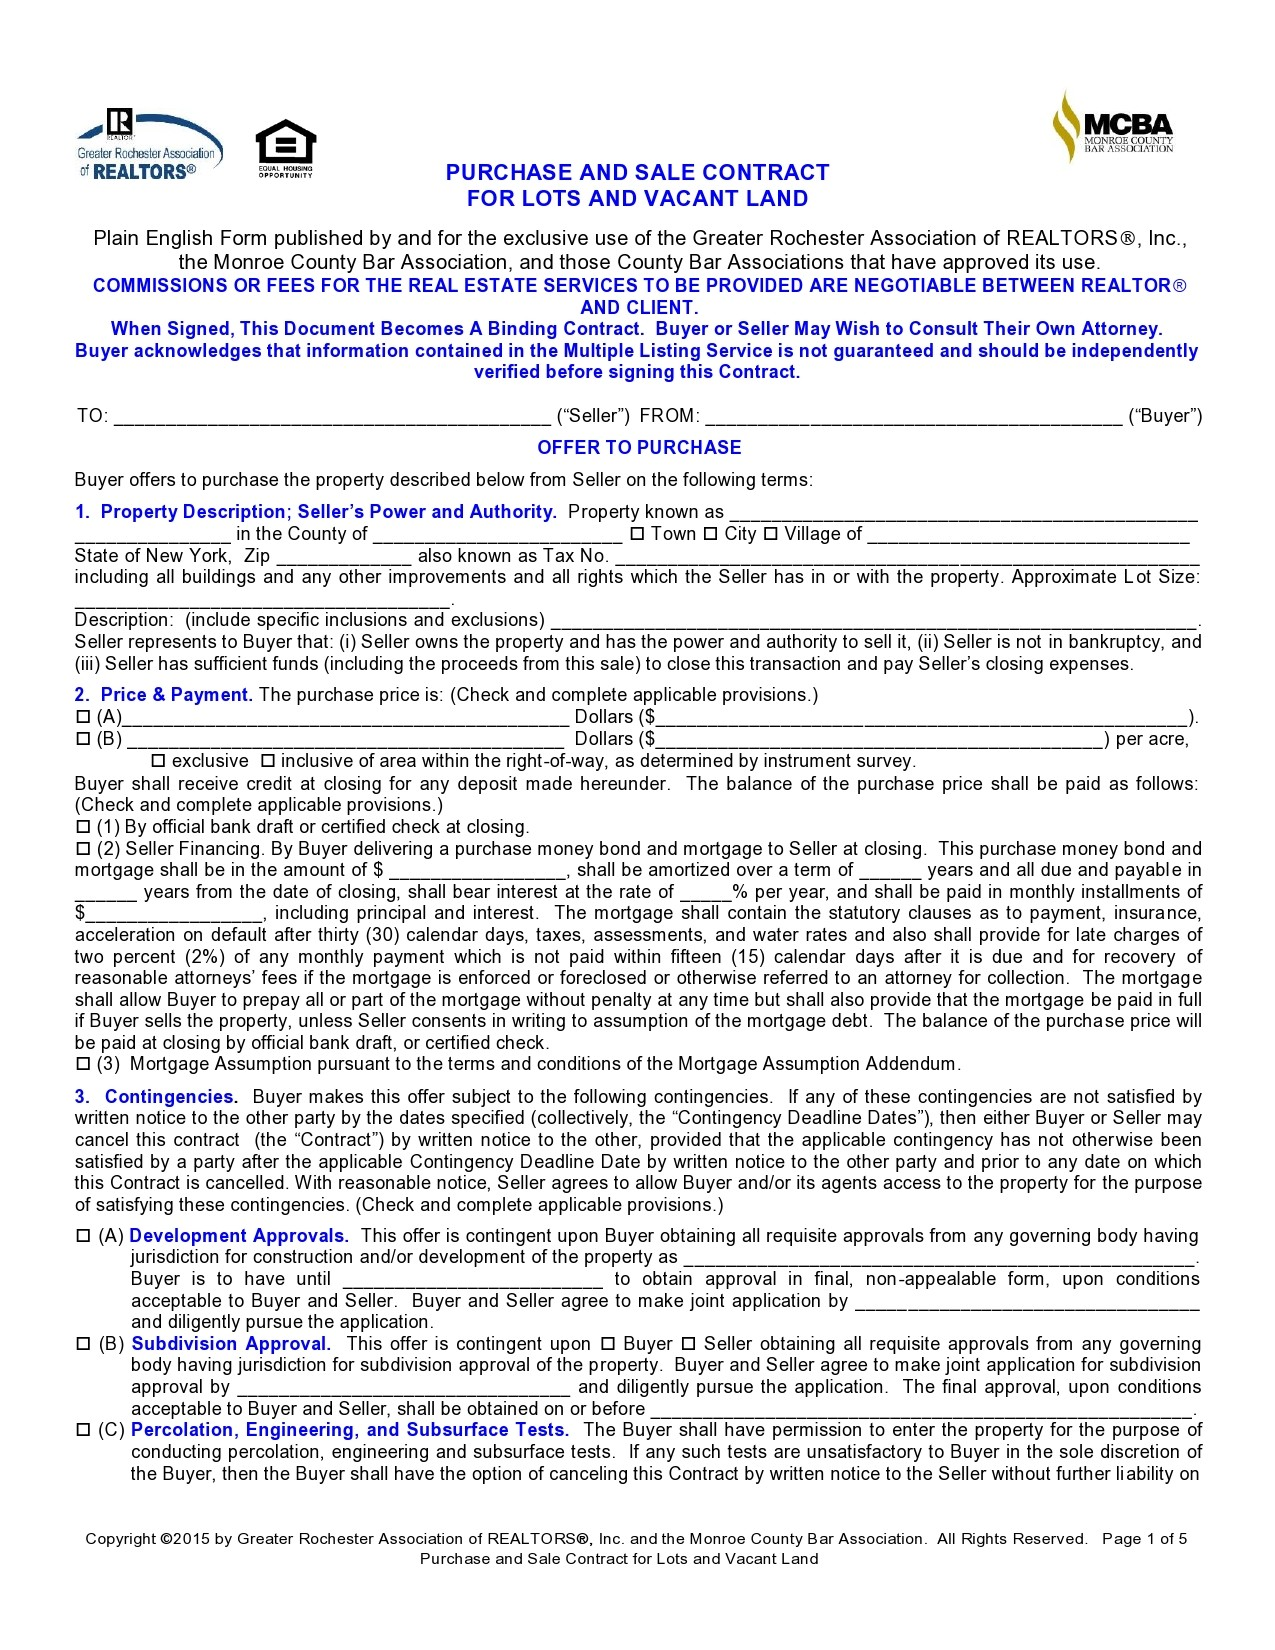 Free land contract form 19